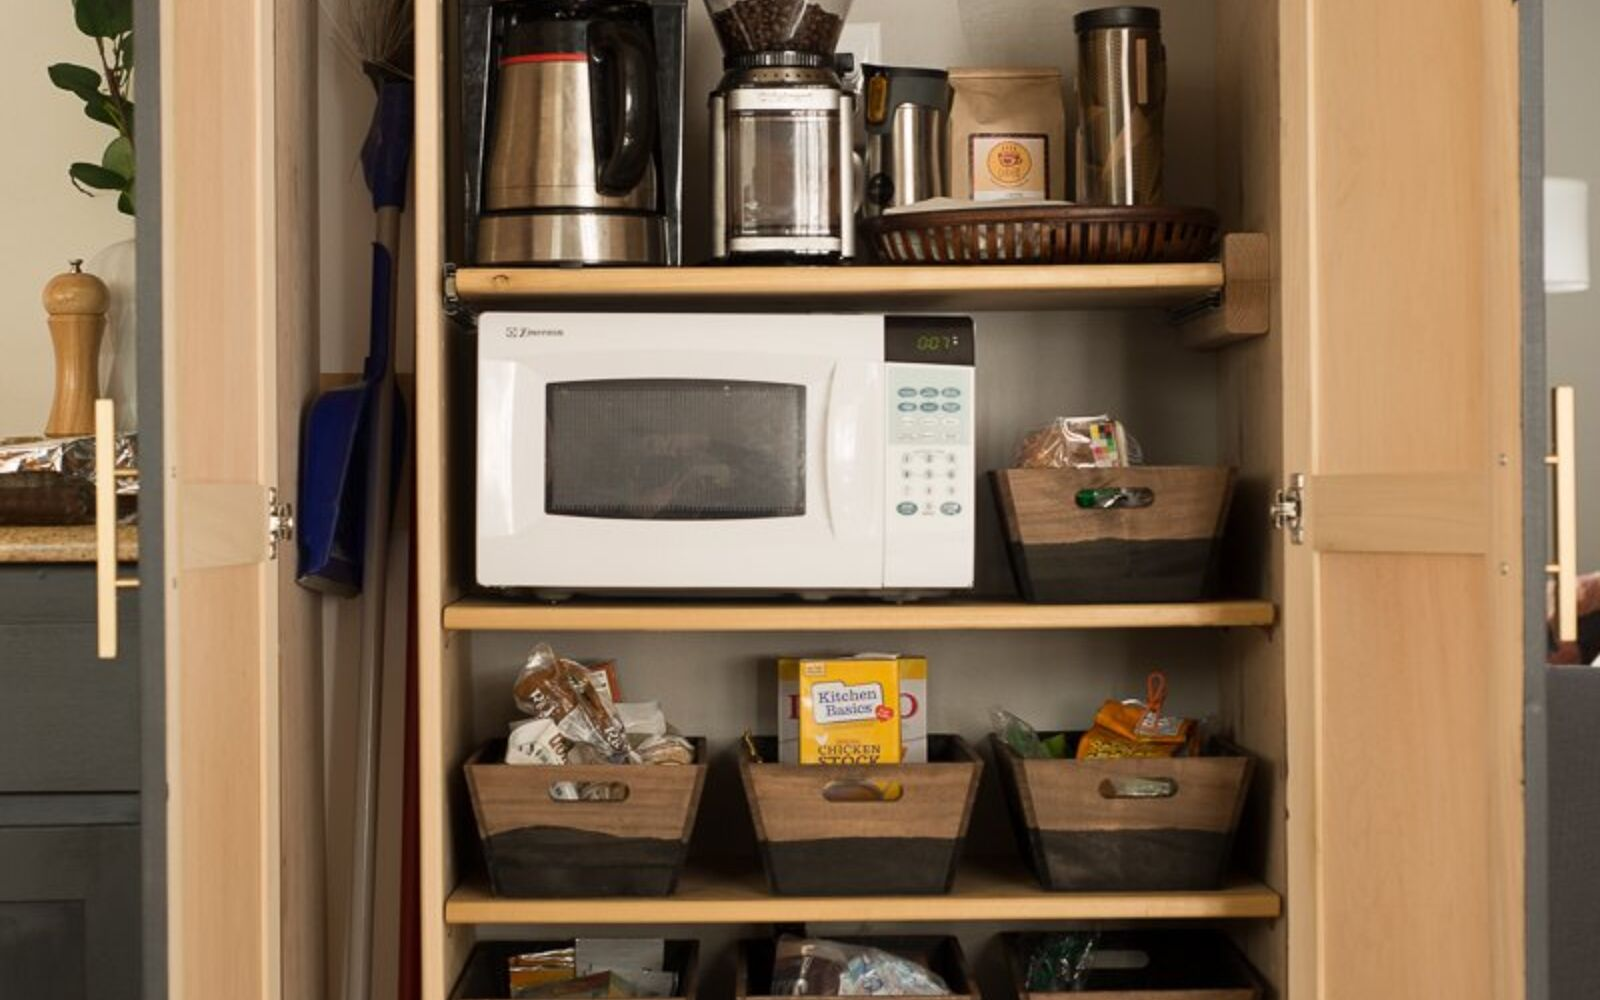 s 15 pinterest worthy pantries that eliminate search time for your favo, Carve A Section For Your Favorite Coffee